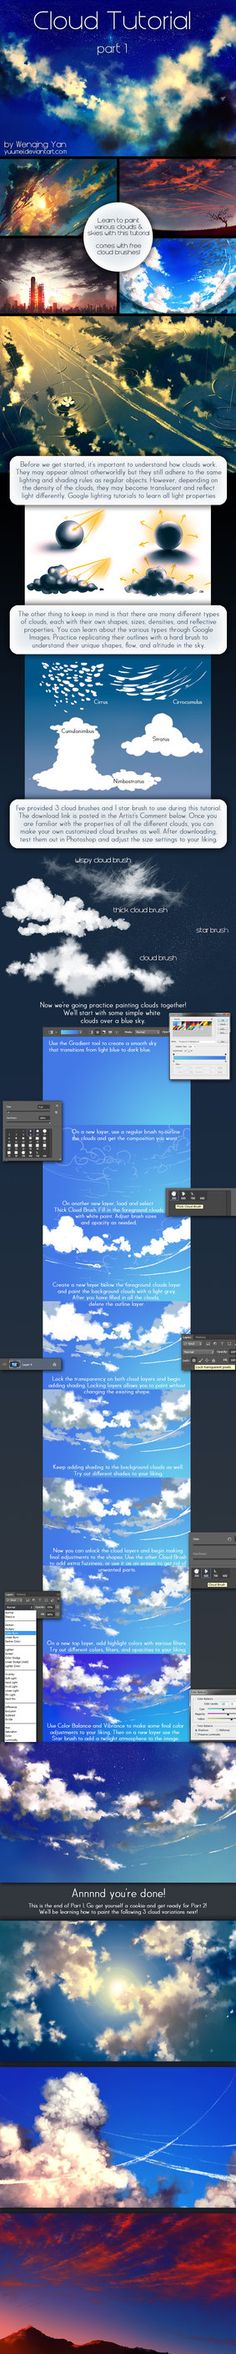 deviantART: More Like Eye Tutorial Resource by *ConceptCookie